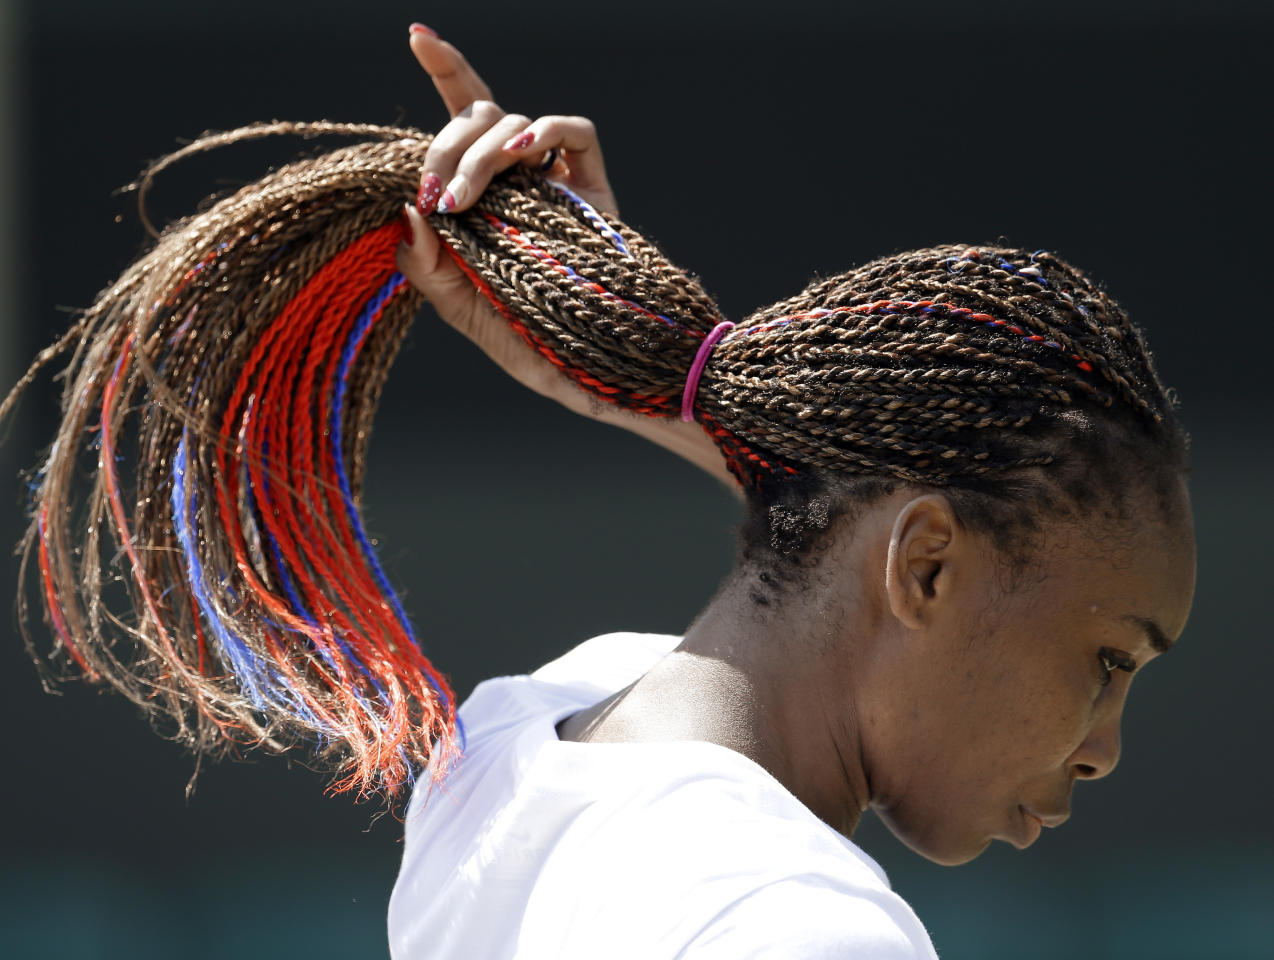 Venus Williams, of the United States, adjusts her hair, which contains red and blue strands, during practice at the All England Lawn Tennis Club at Wimbledon, in London, at the 2012 Summer Olympics, Thursday, July 26, 2012. Tennis competition is scheduled to begin Saturday, July 28. (AP Photo/Mark Humphrey)